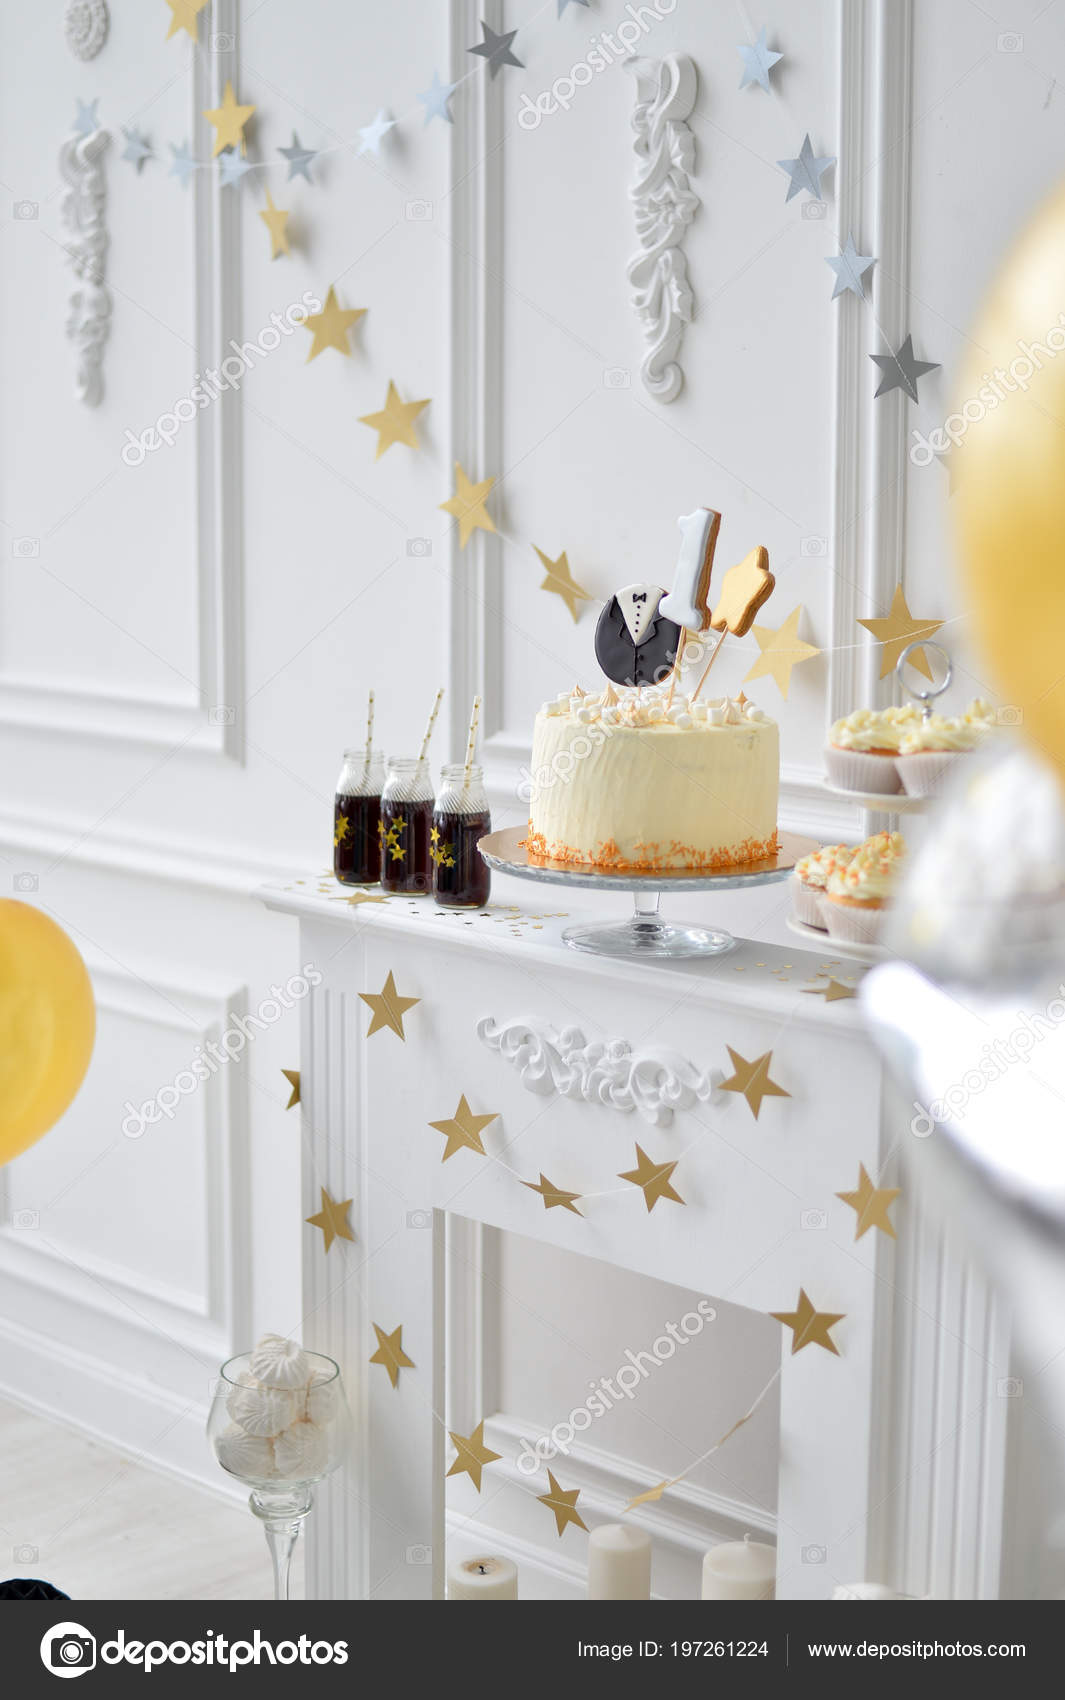 Beautiful Decorations For Birthday Party A Lot Of Stars And Balloons Cakes Holiday One Year